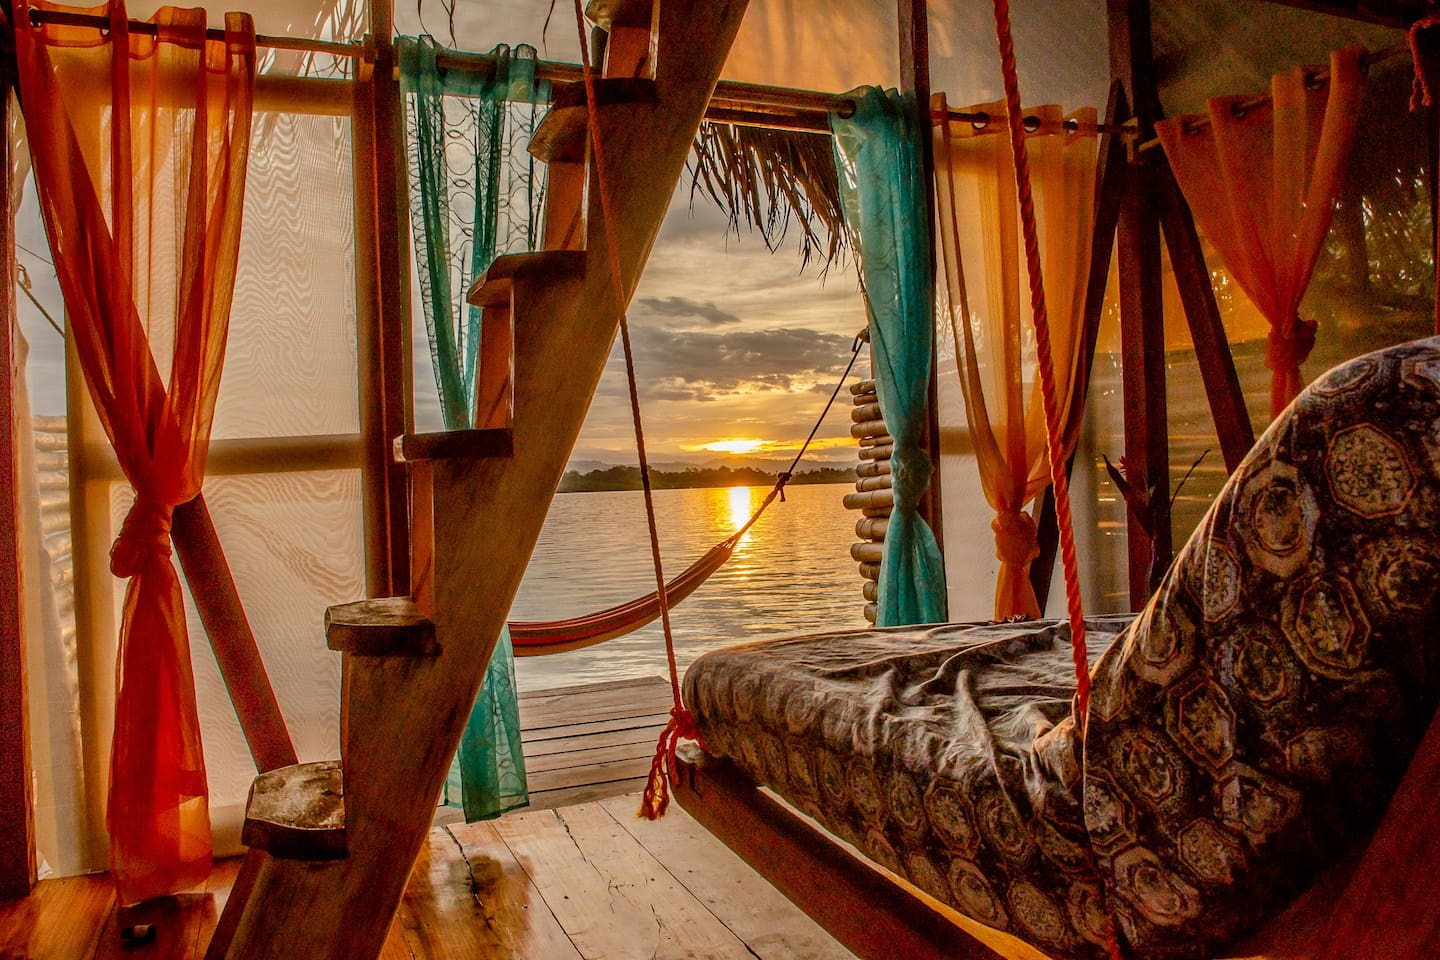 Sunset from the hanging sofa on the ground floor of your loft!